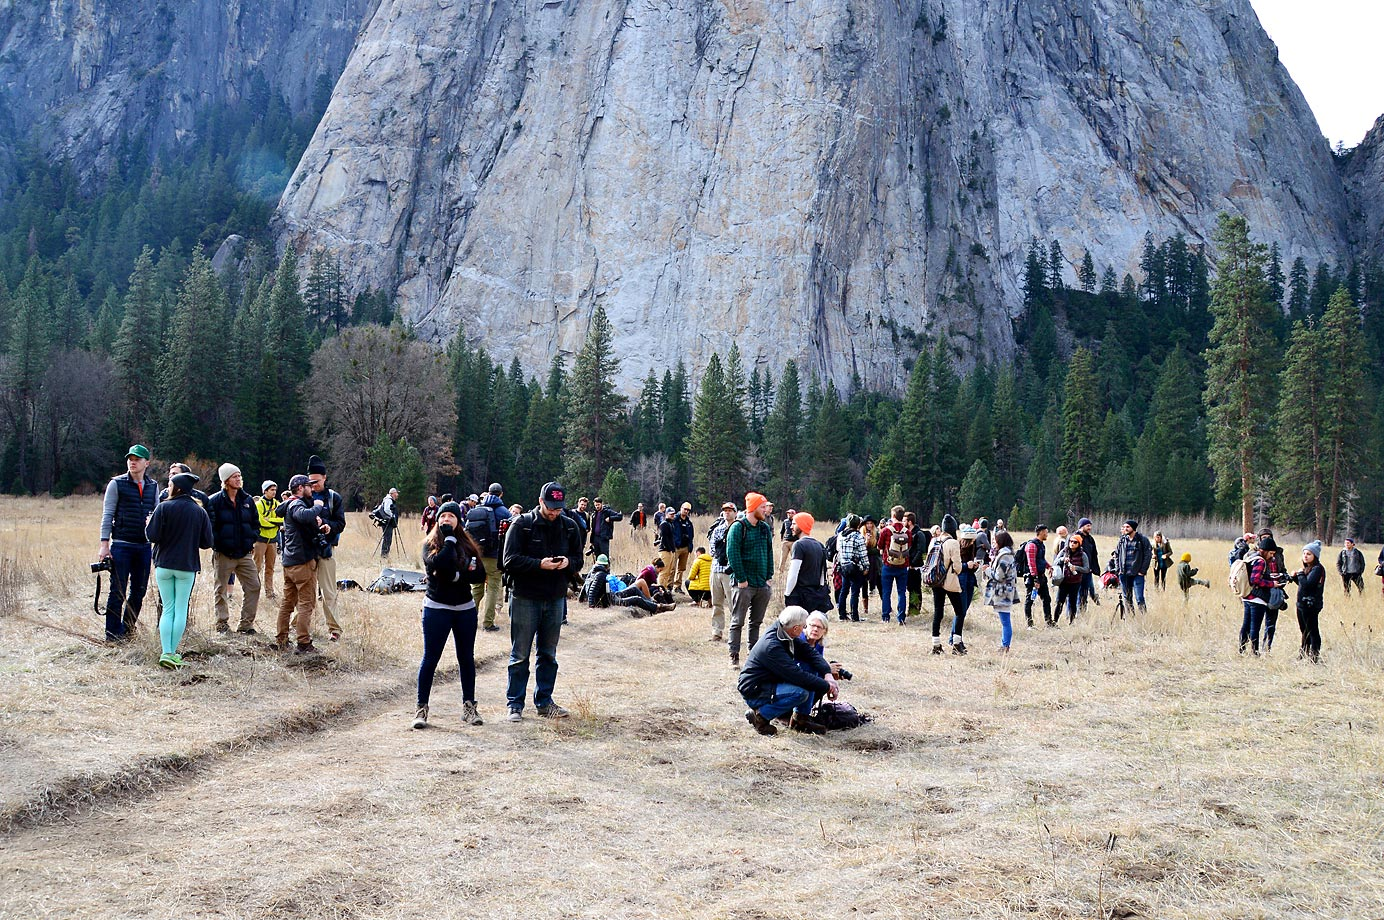 Crowds watch and wait anxiously in ElCap Meadow.